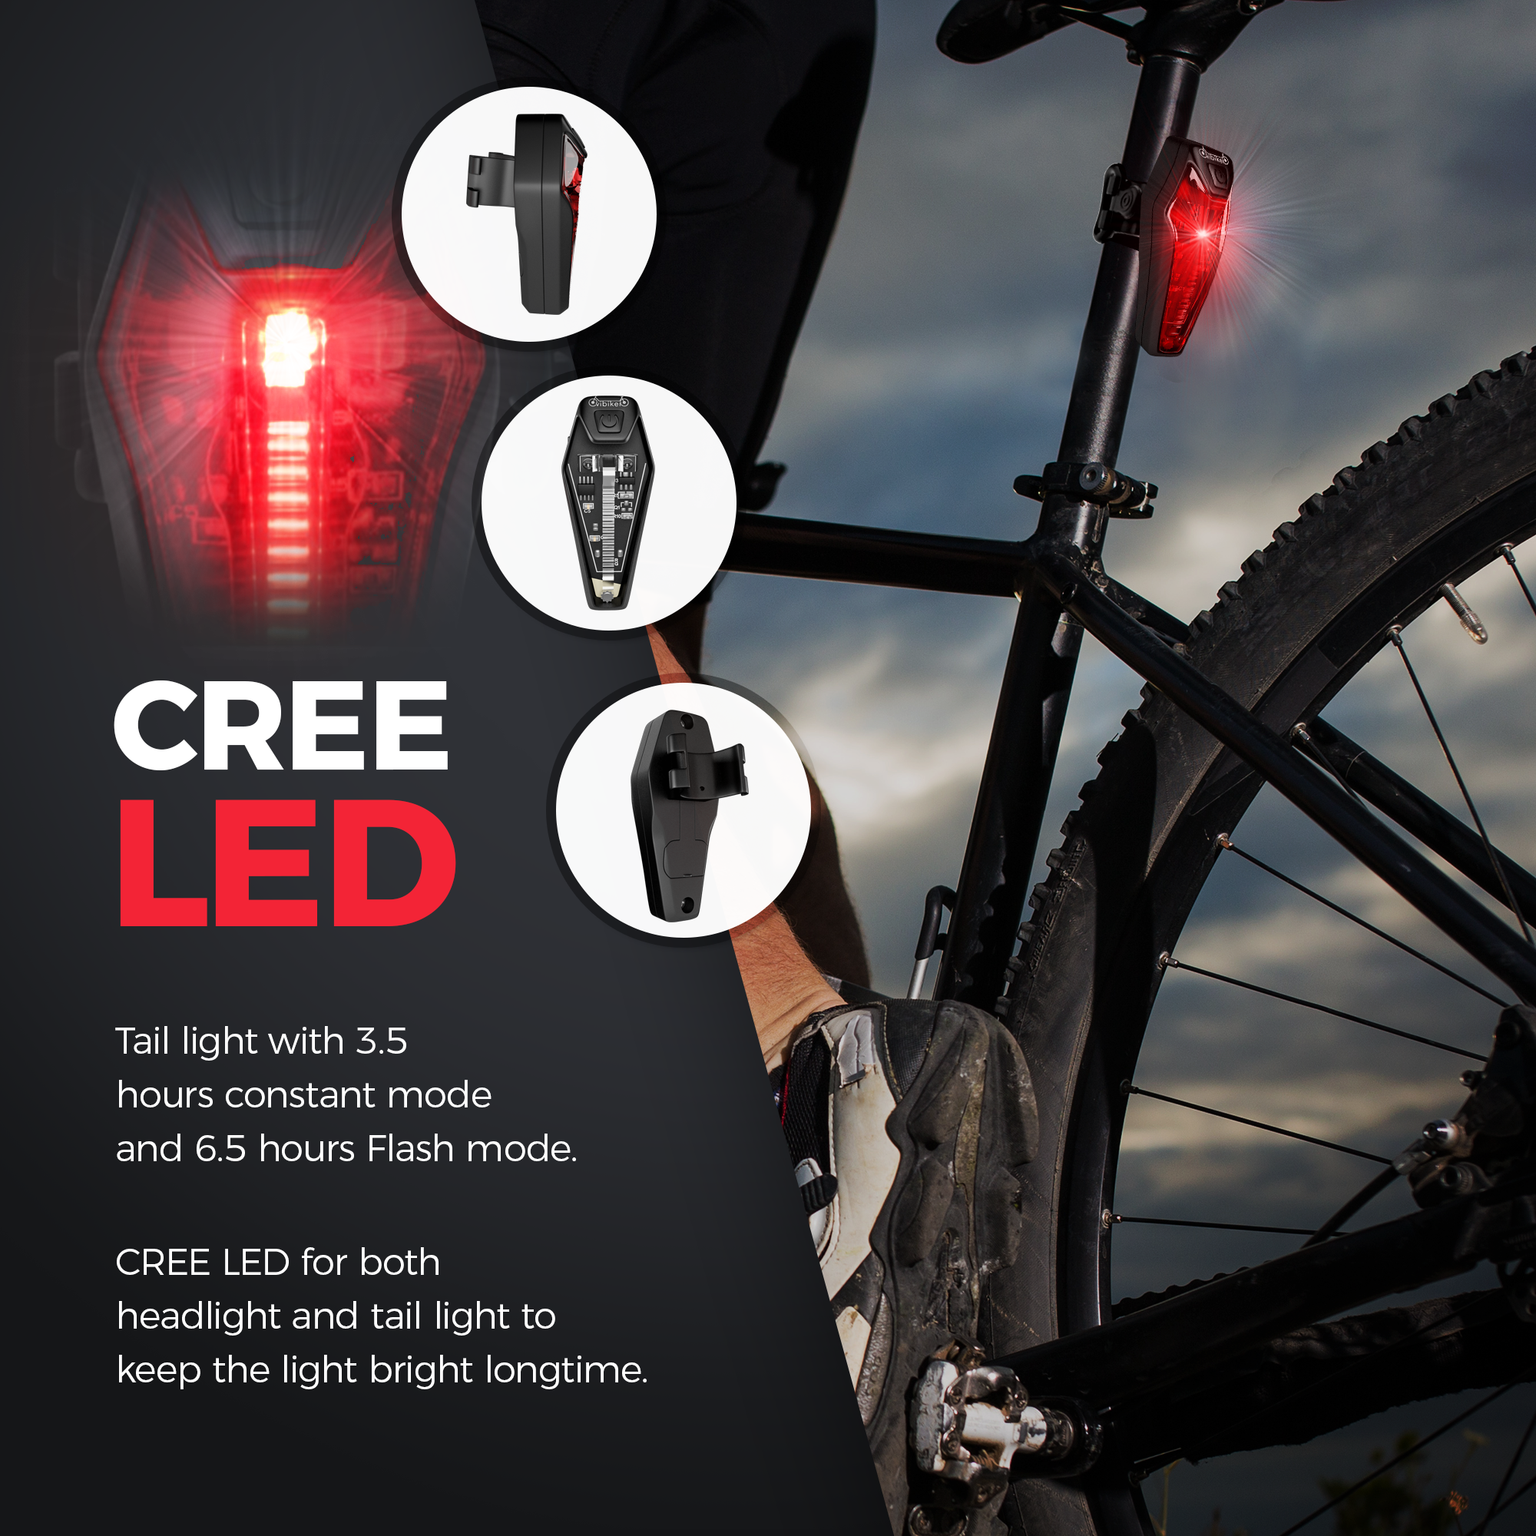 complete lighting with amzn lights sealed x cree ver powered products lumen main set bike rear intensity high image led abs light polymer battery